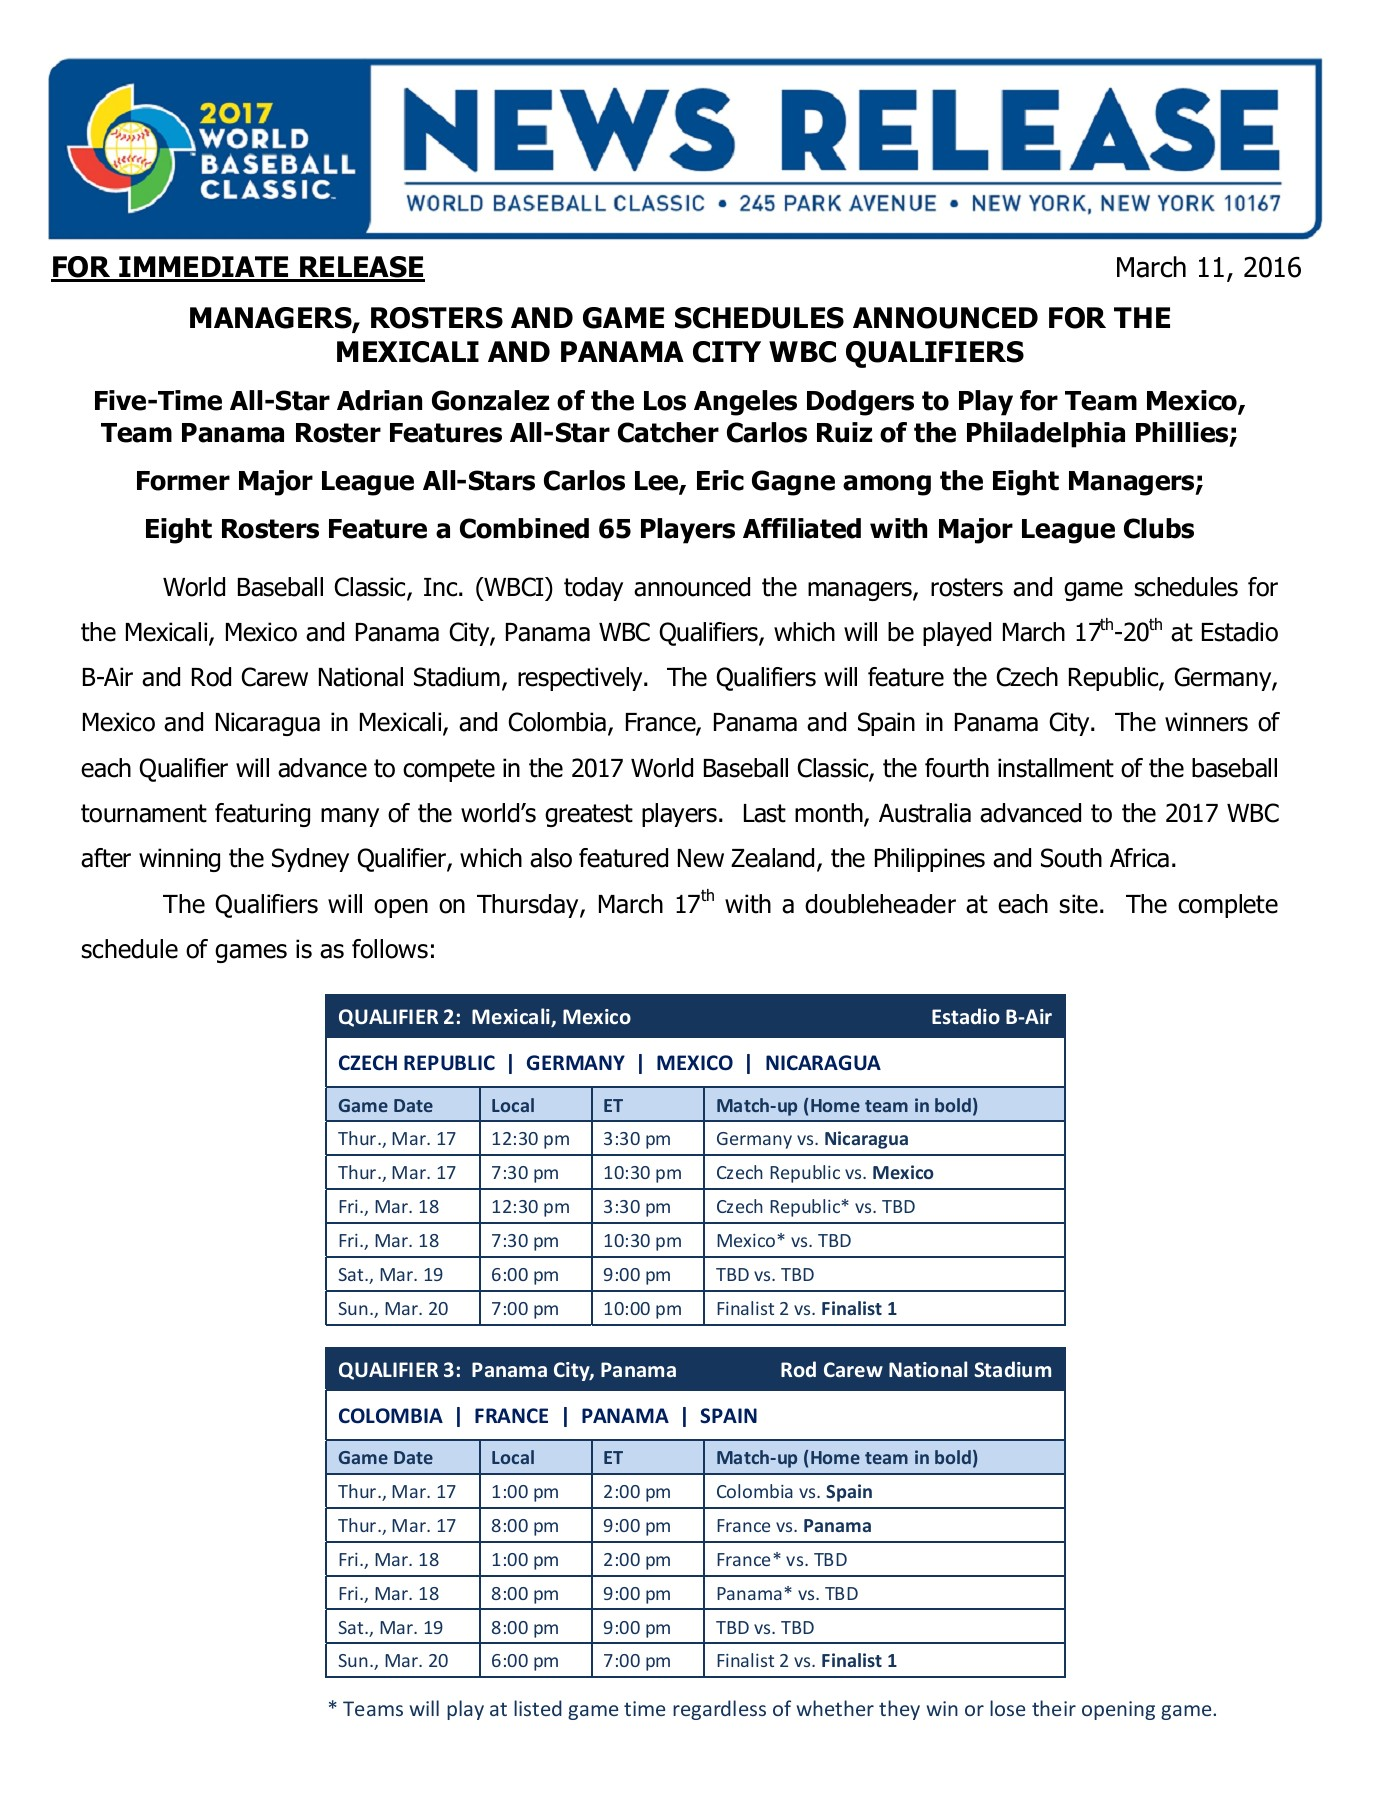 Managers, Rosters and Game Schedule Announced For Mexicali